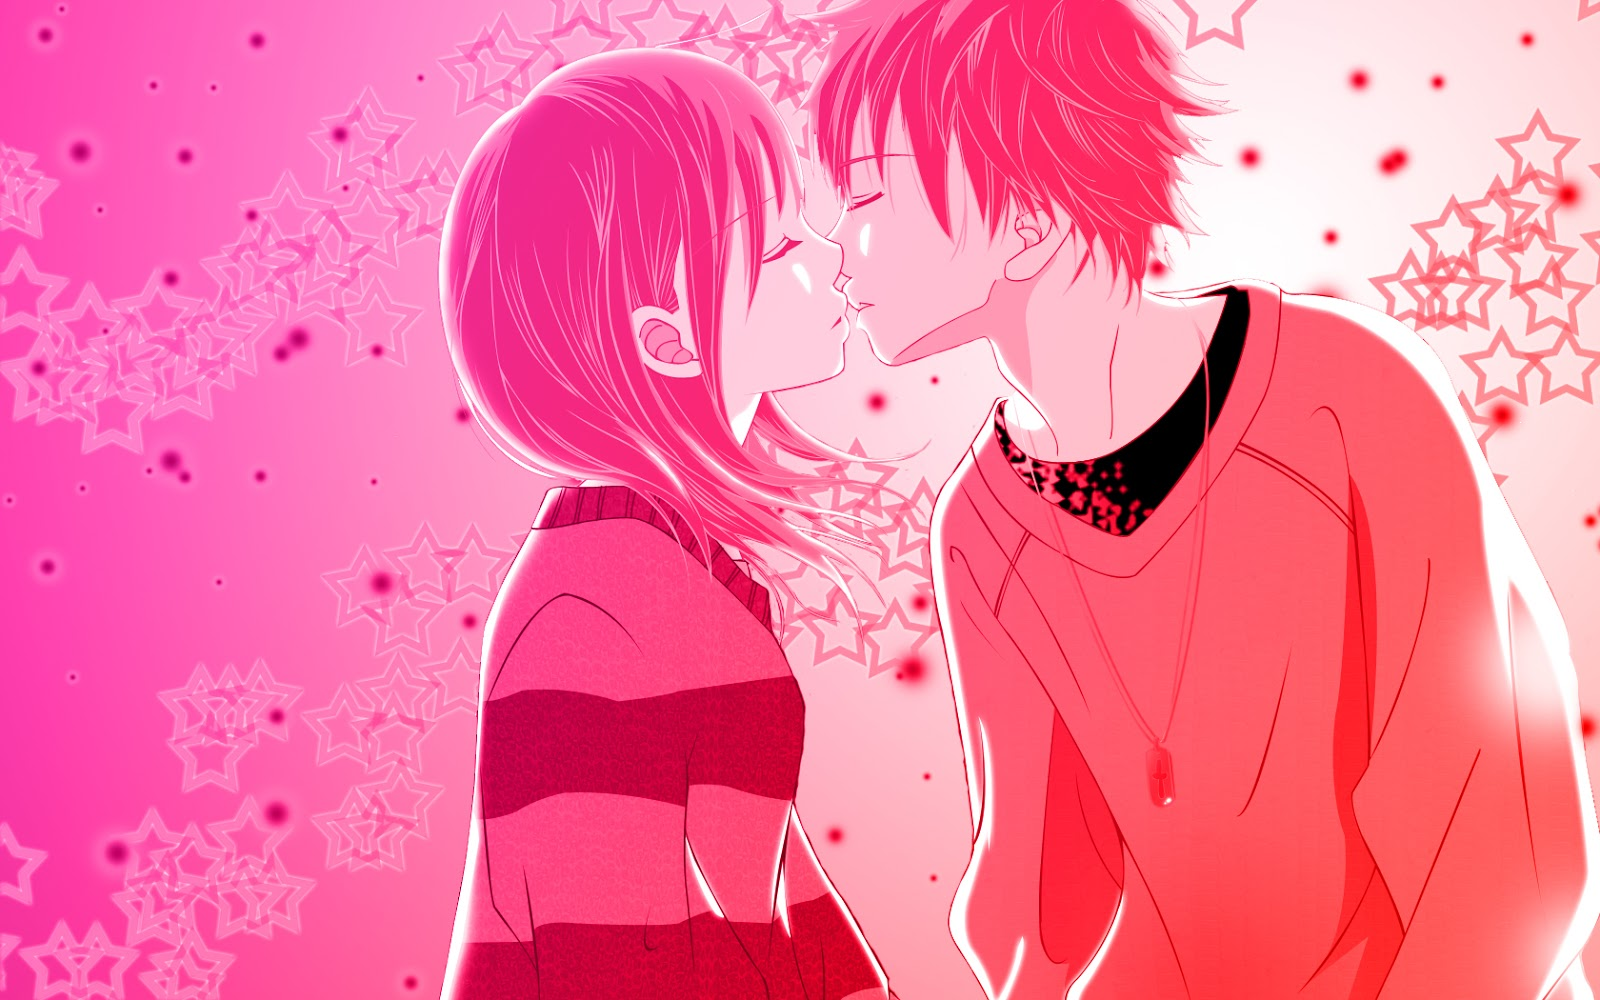 romance anime love couple kissing images hd